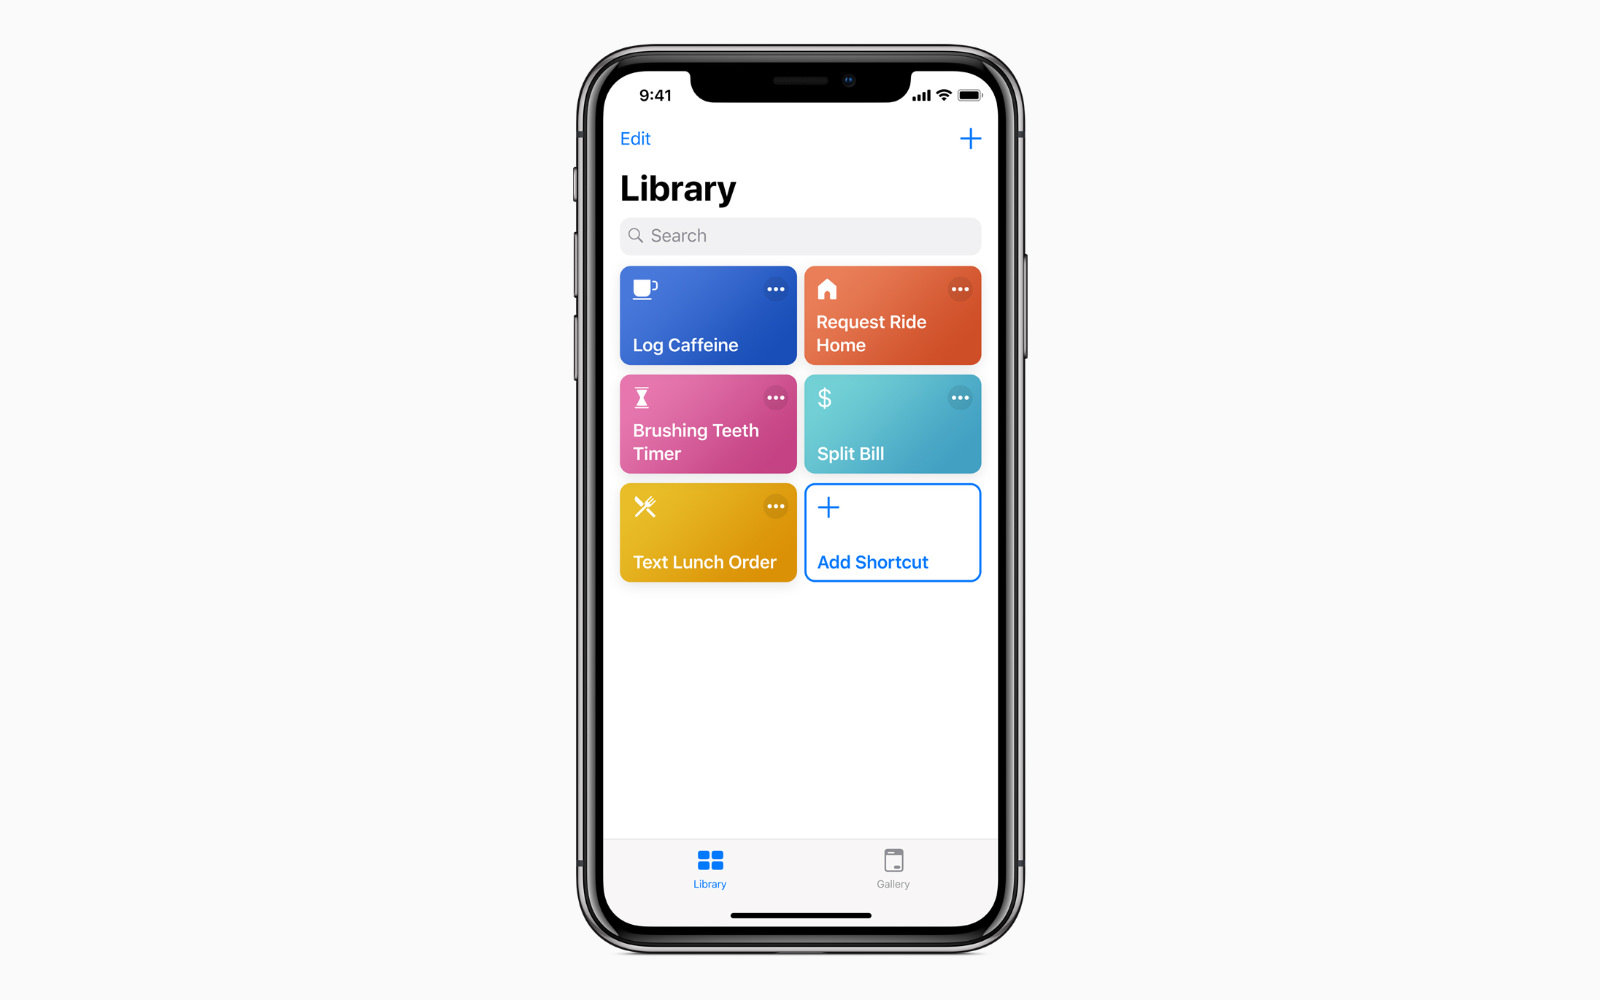 Siri Shortcuts apple official